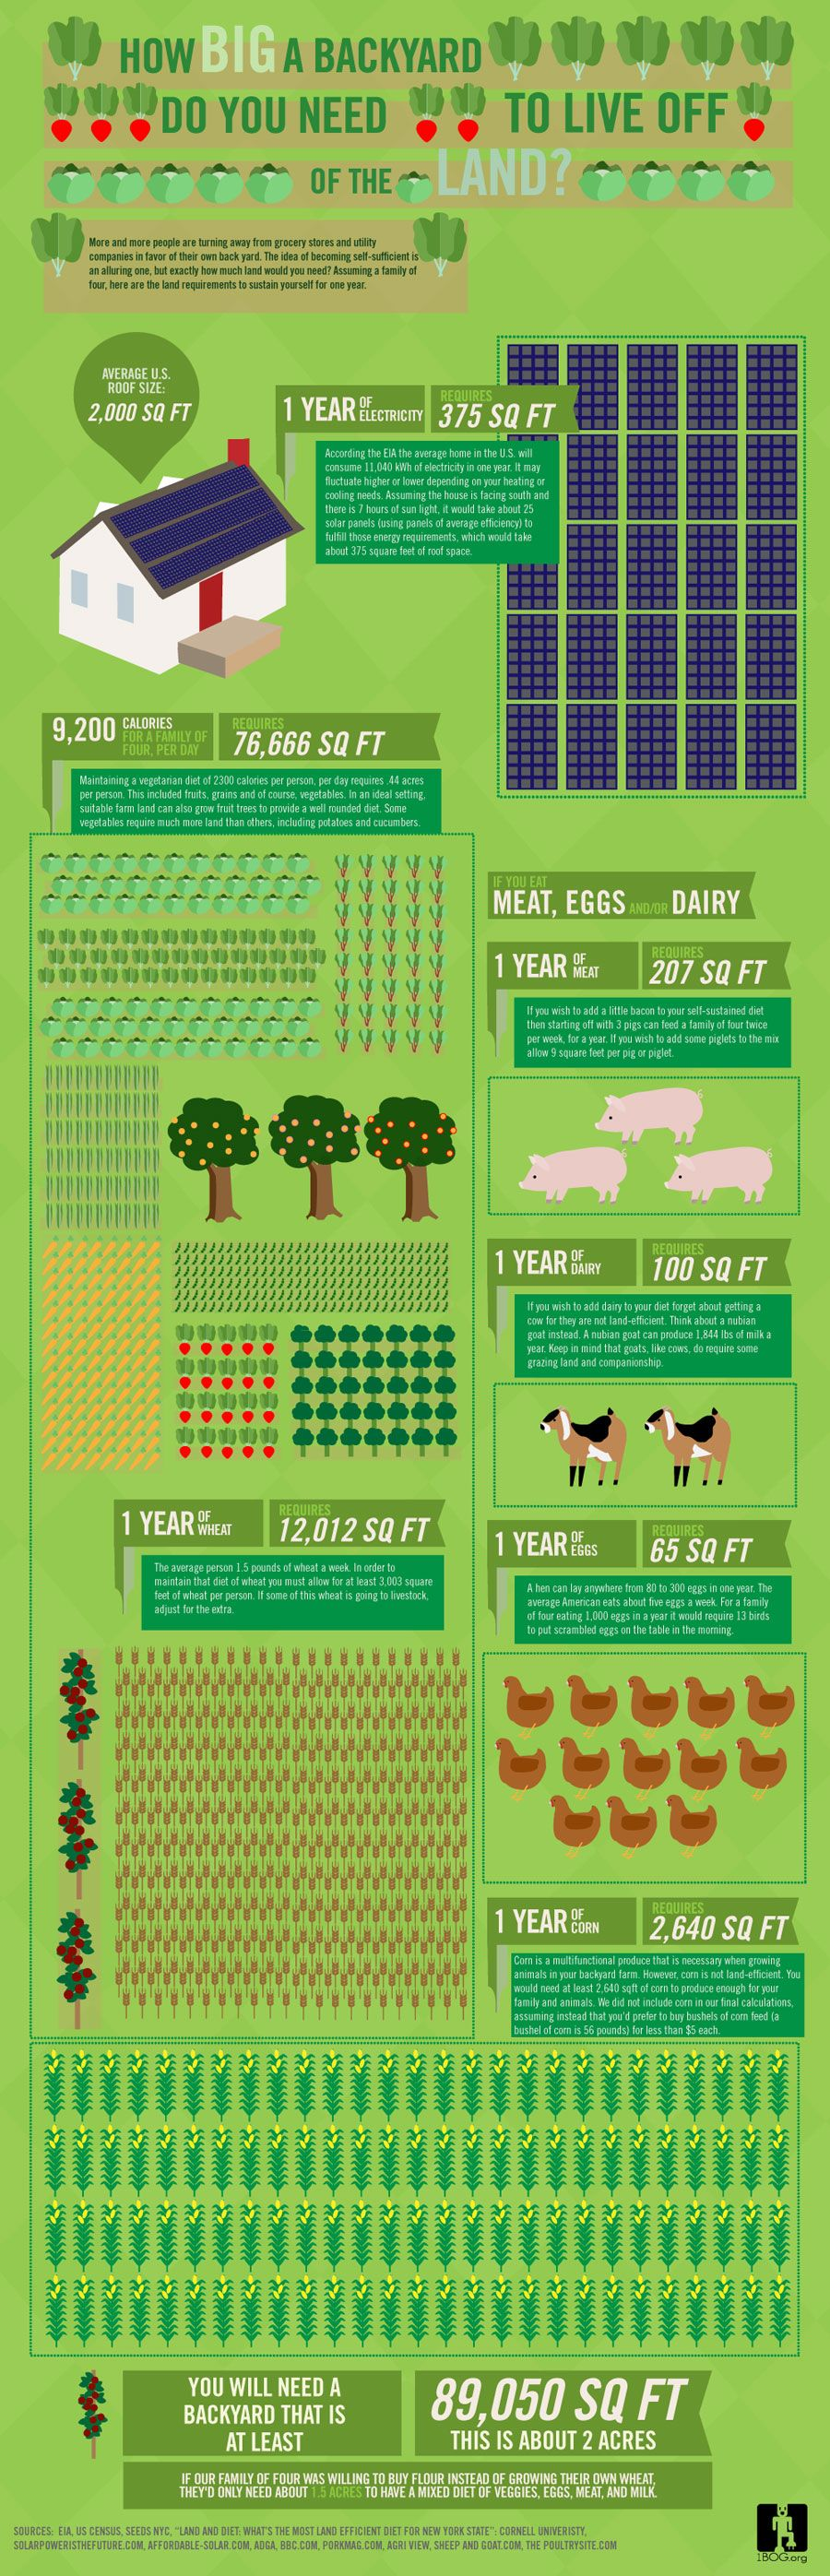 how big a backyard would you need to live off the land acre